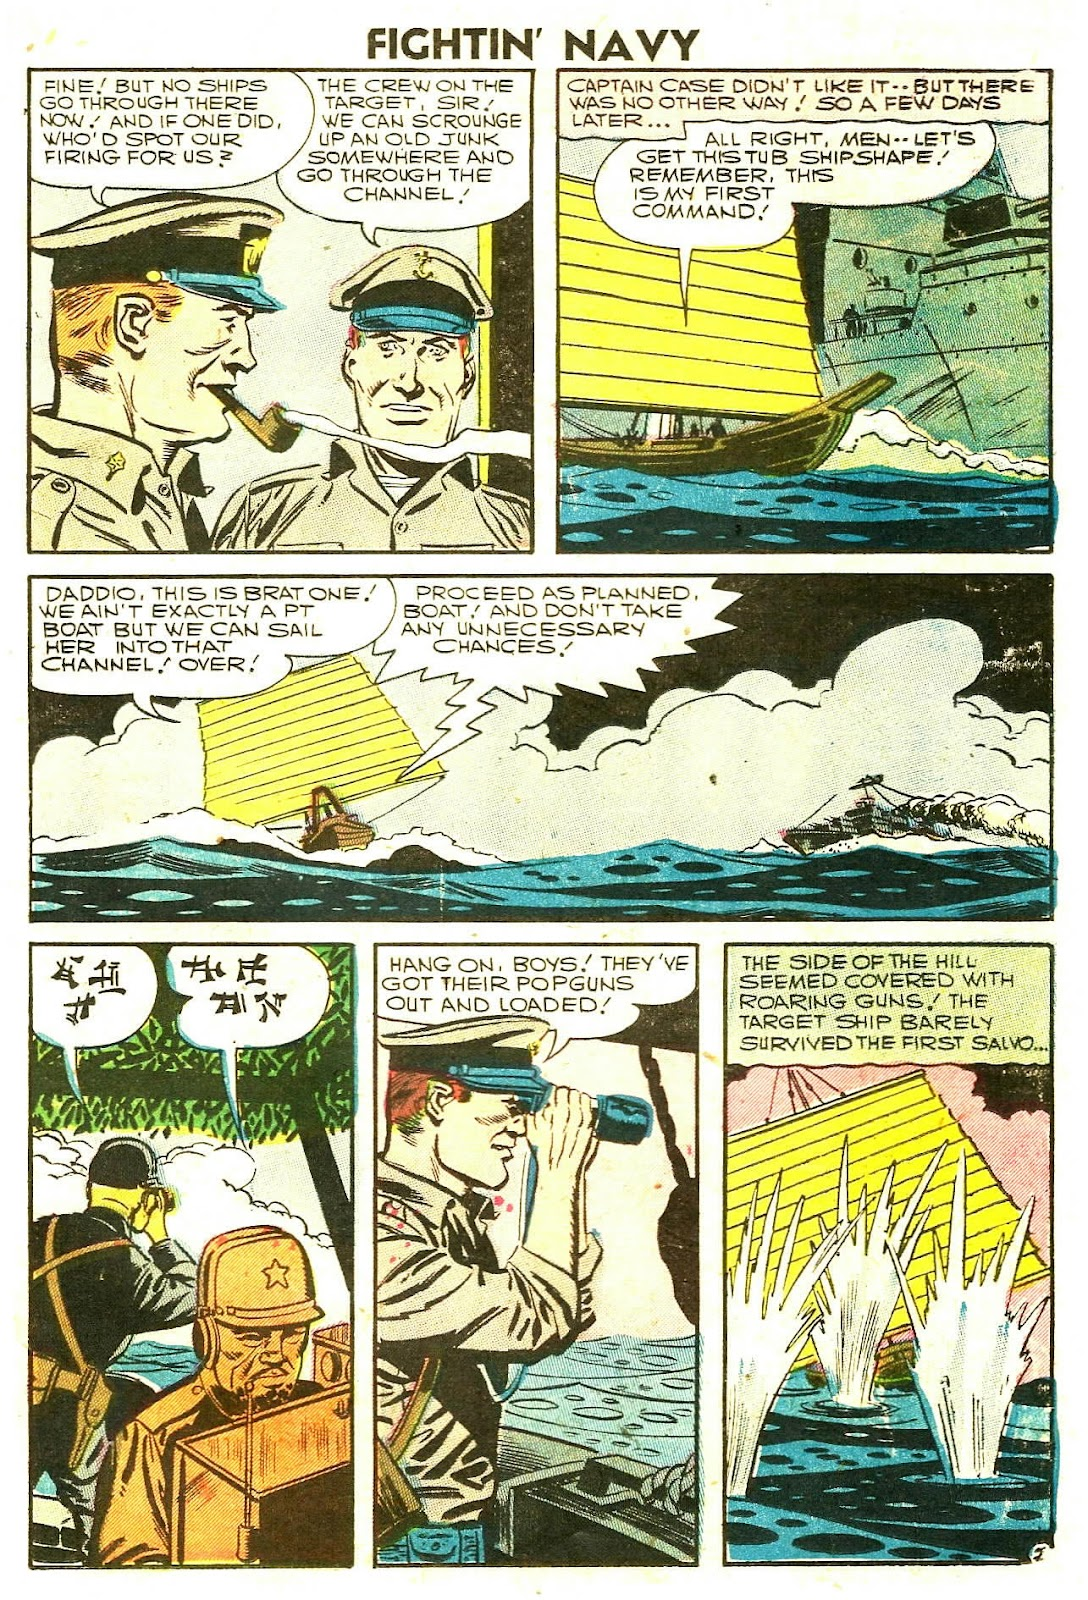 Read online Fightin' Navy comic -  Issue #78 - 19